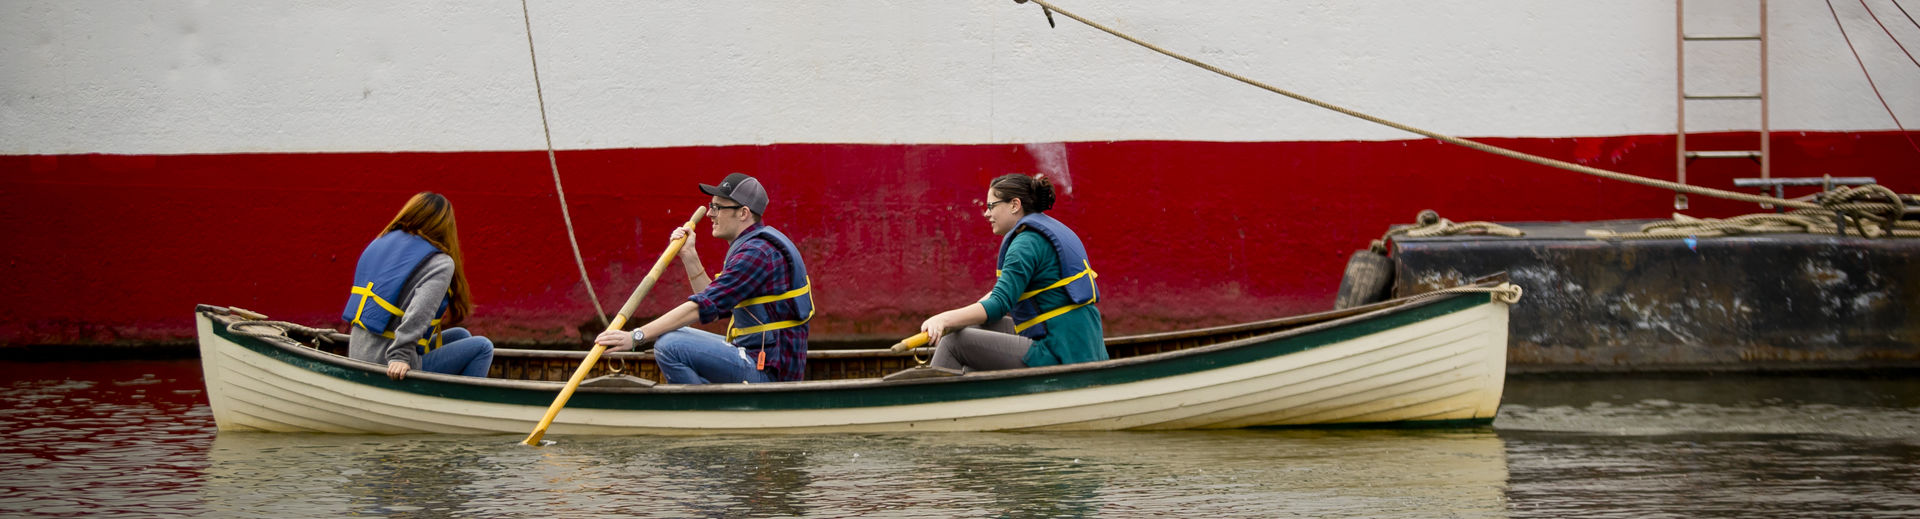 Temple graduate students in the Material Cultures class in a boat at the seaport museum